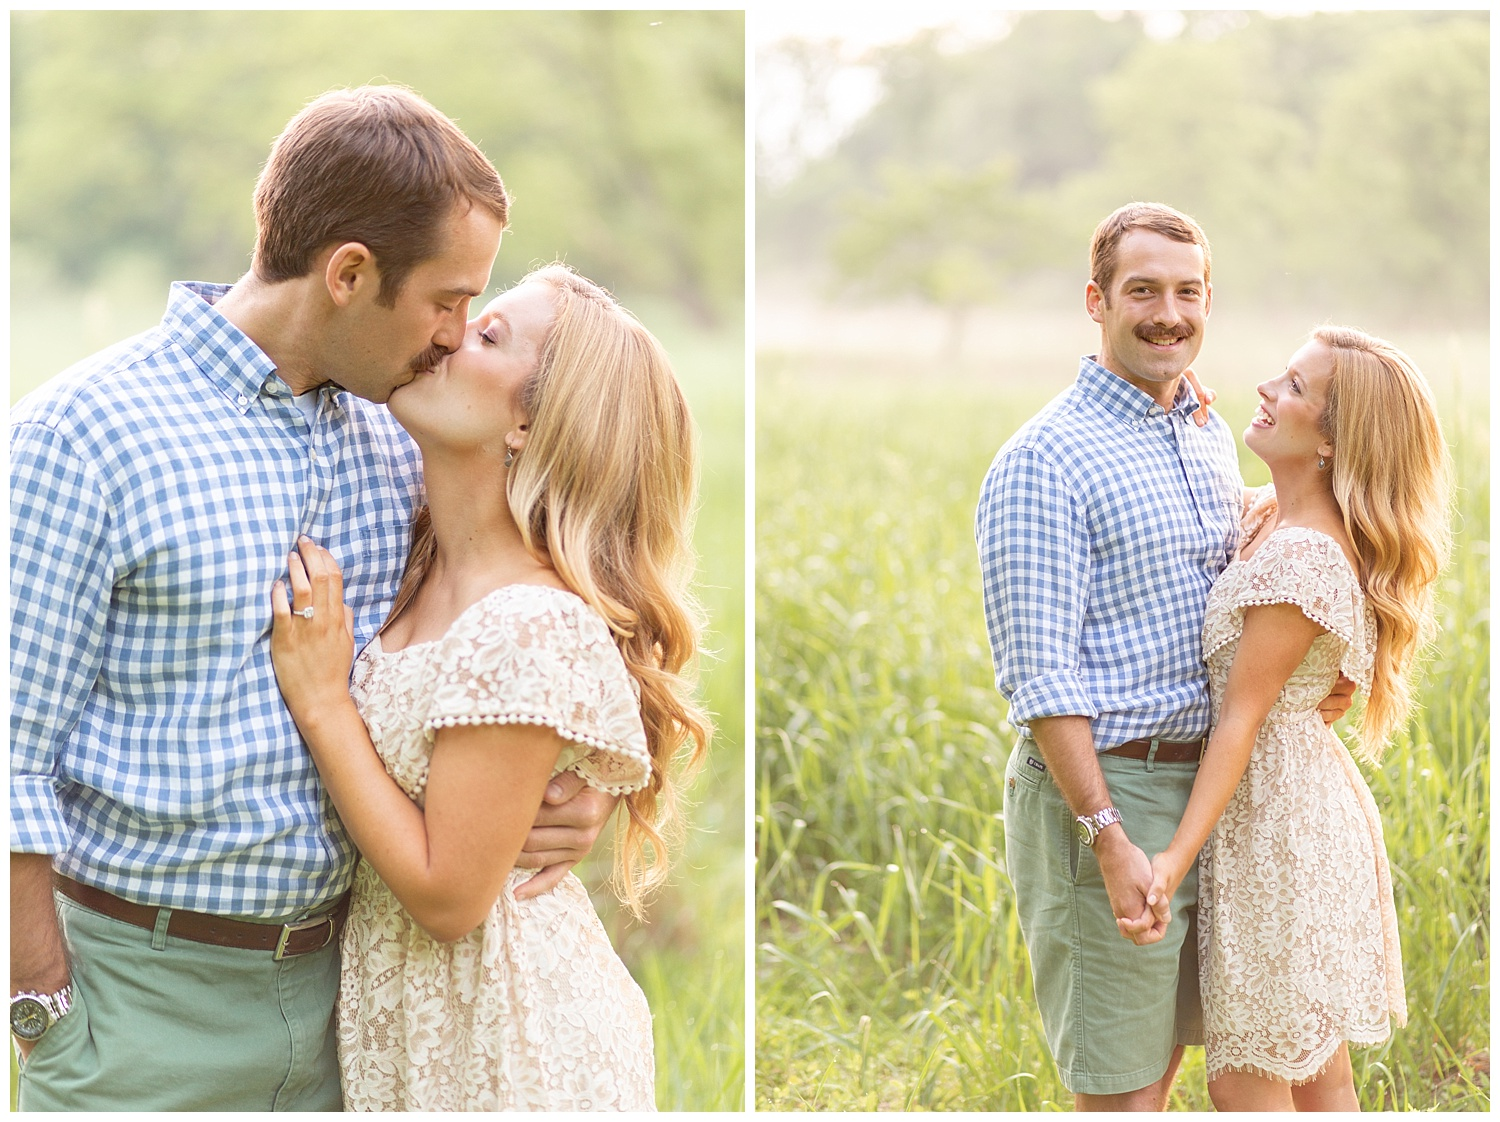 emily-belson-photography-spring-maryland-engagement-07.jpg